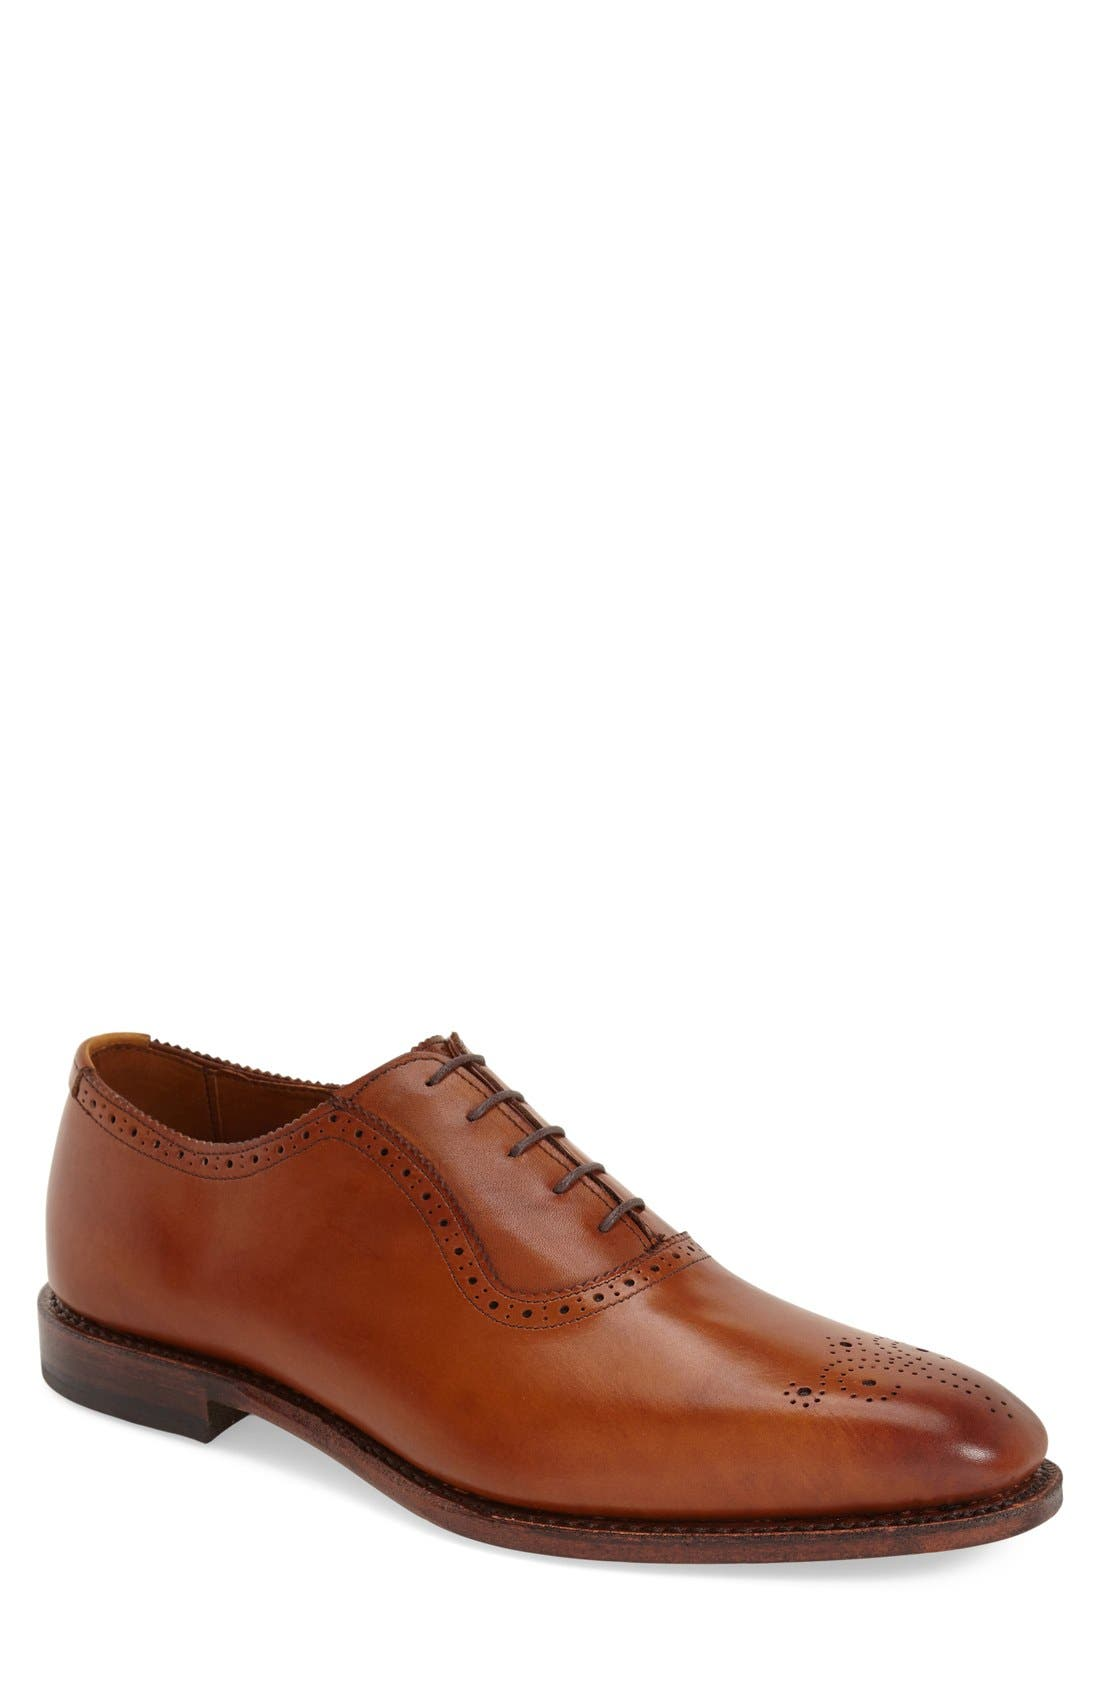 Allen Edmonds 'Cornwallis' Medallion Toe Oxford (Men)